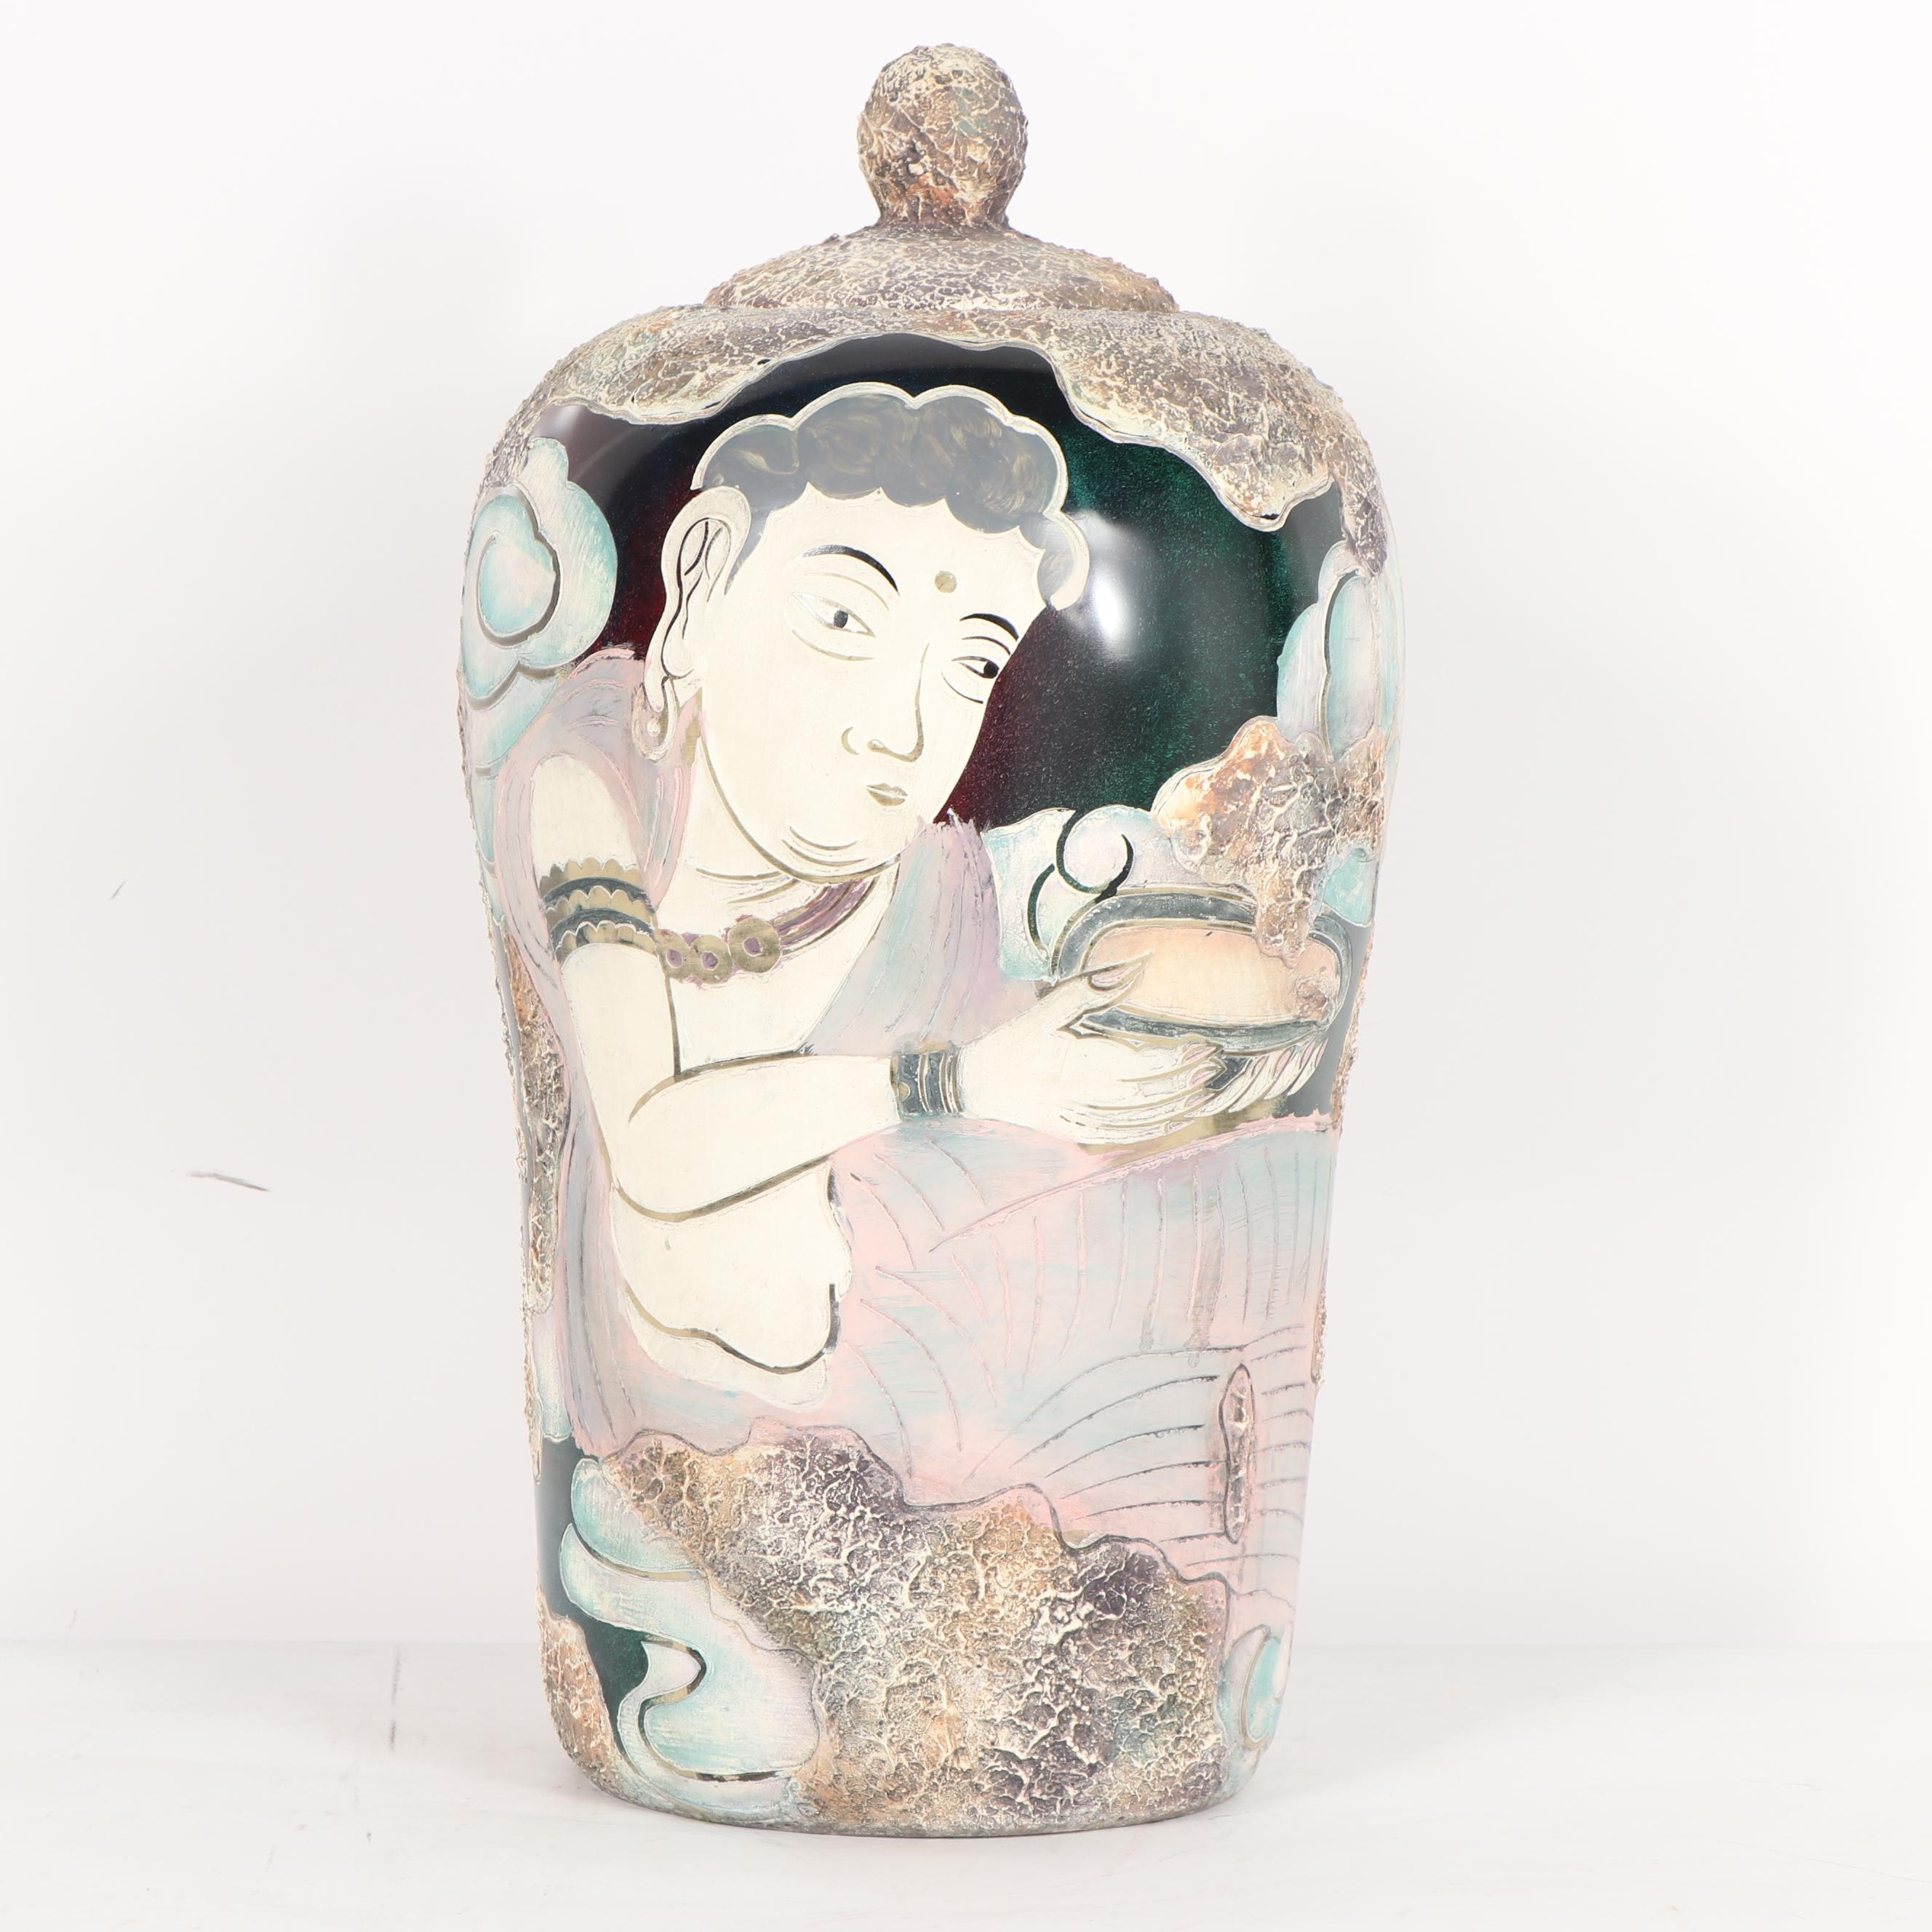 Chinese Covered Vase with Buddha Imagery